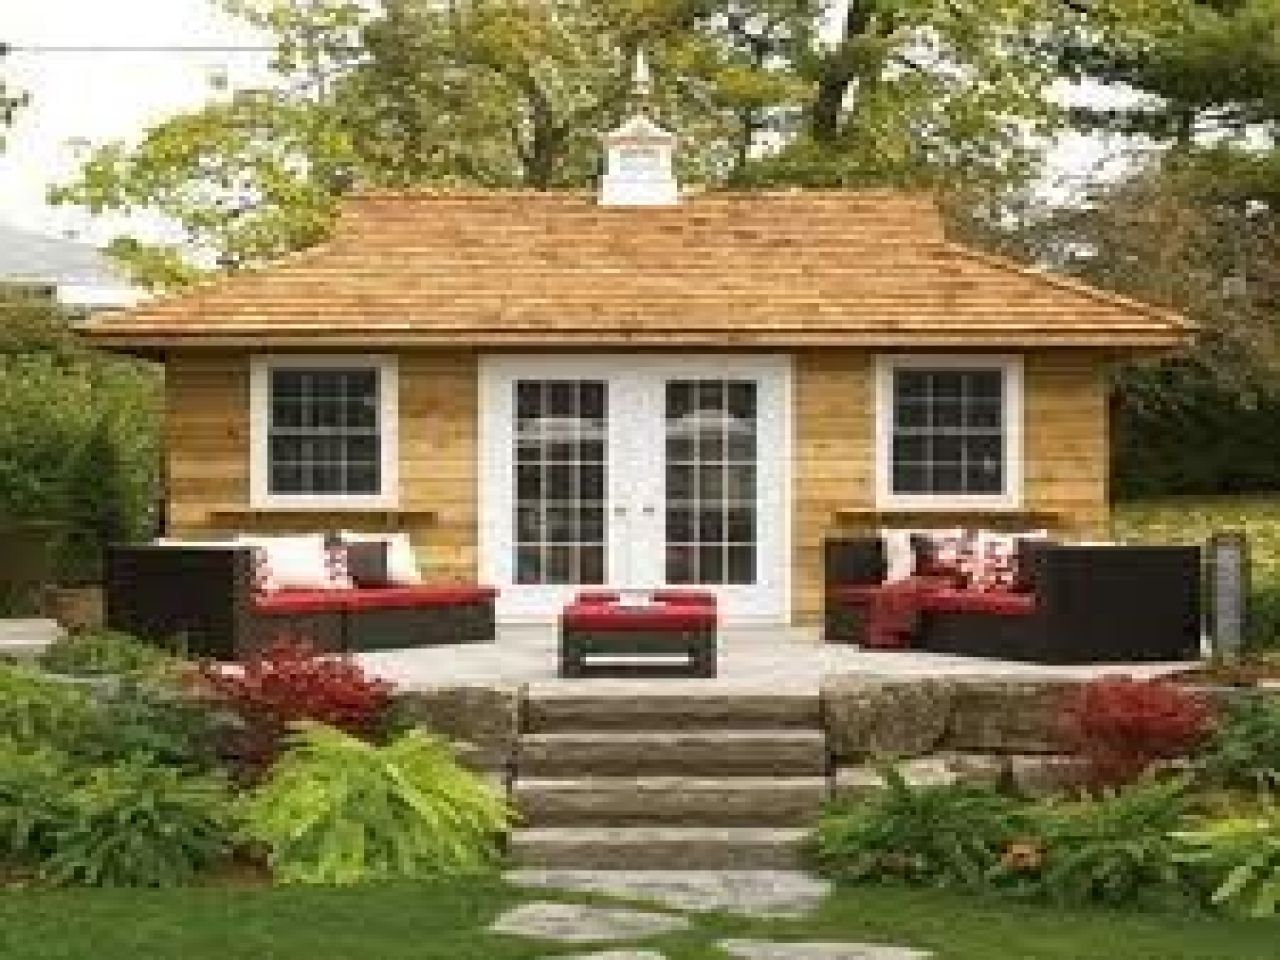 Small backyard guest house ideas mother in law backyard for Small guest house ideas